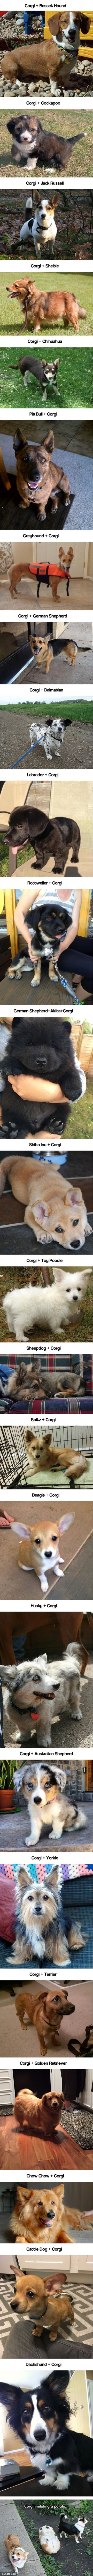 26 Corgeous Corgi Mixes That Are Fluffily Bootiful